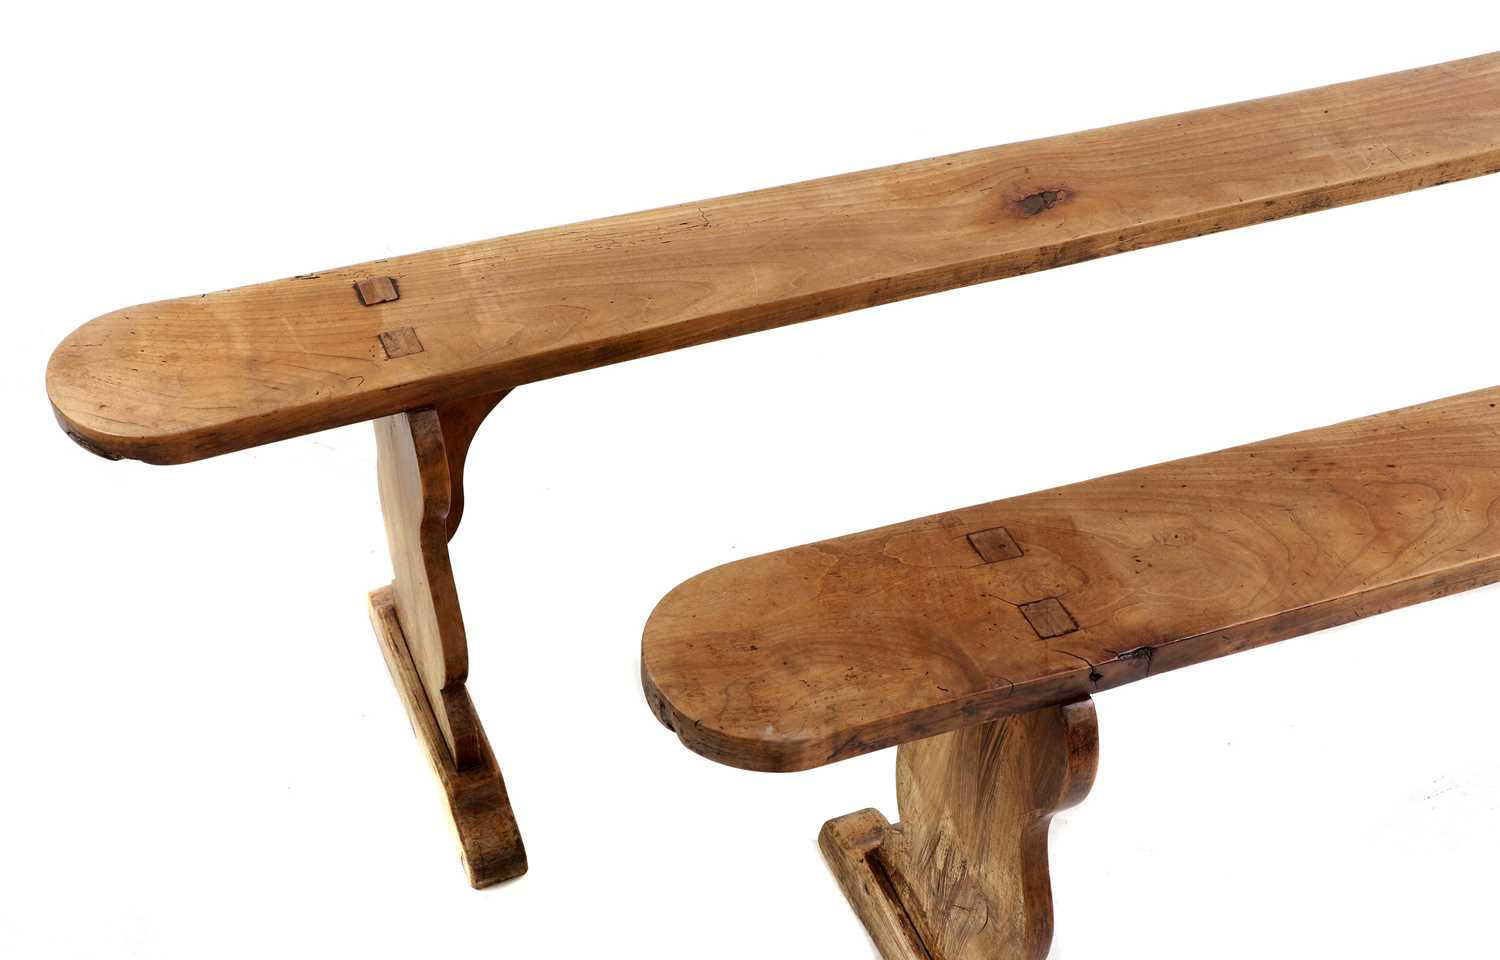 A French provincial sycamore kitchen table, - Image 9 of 10